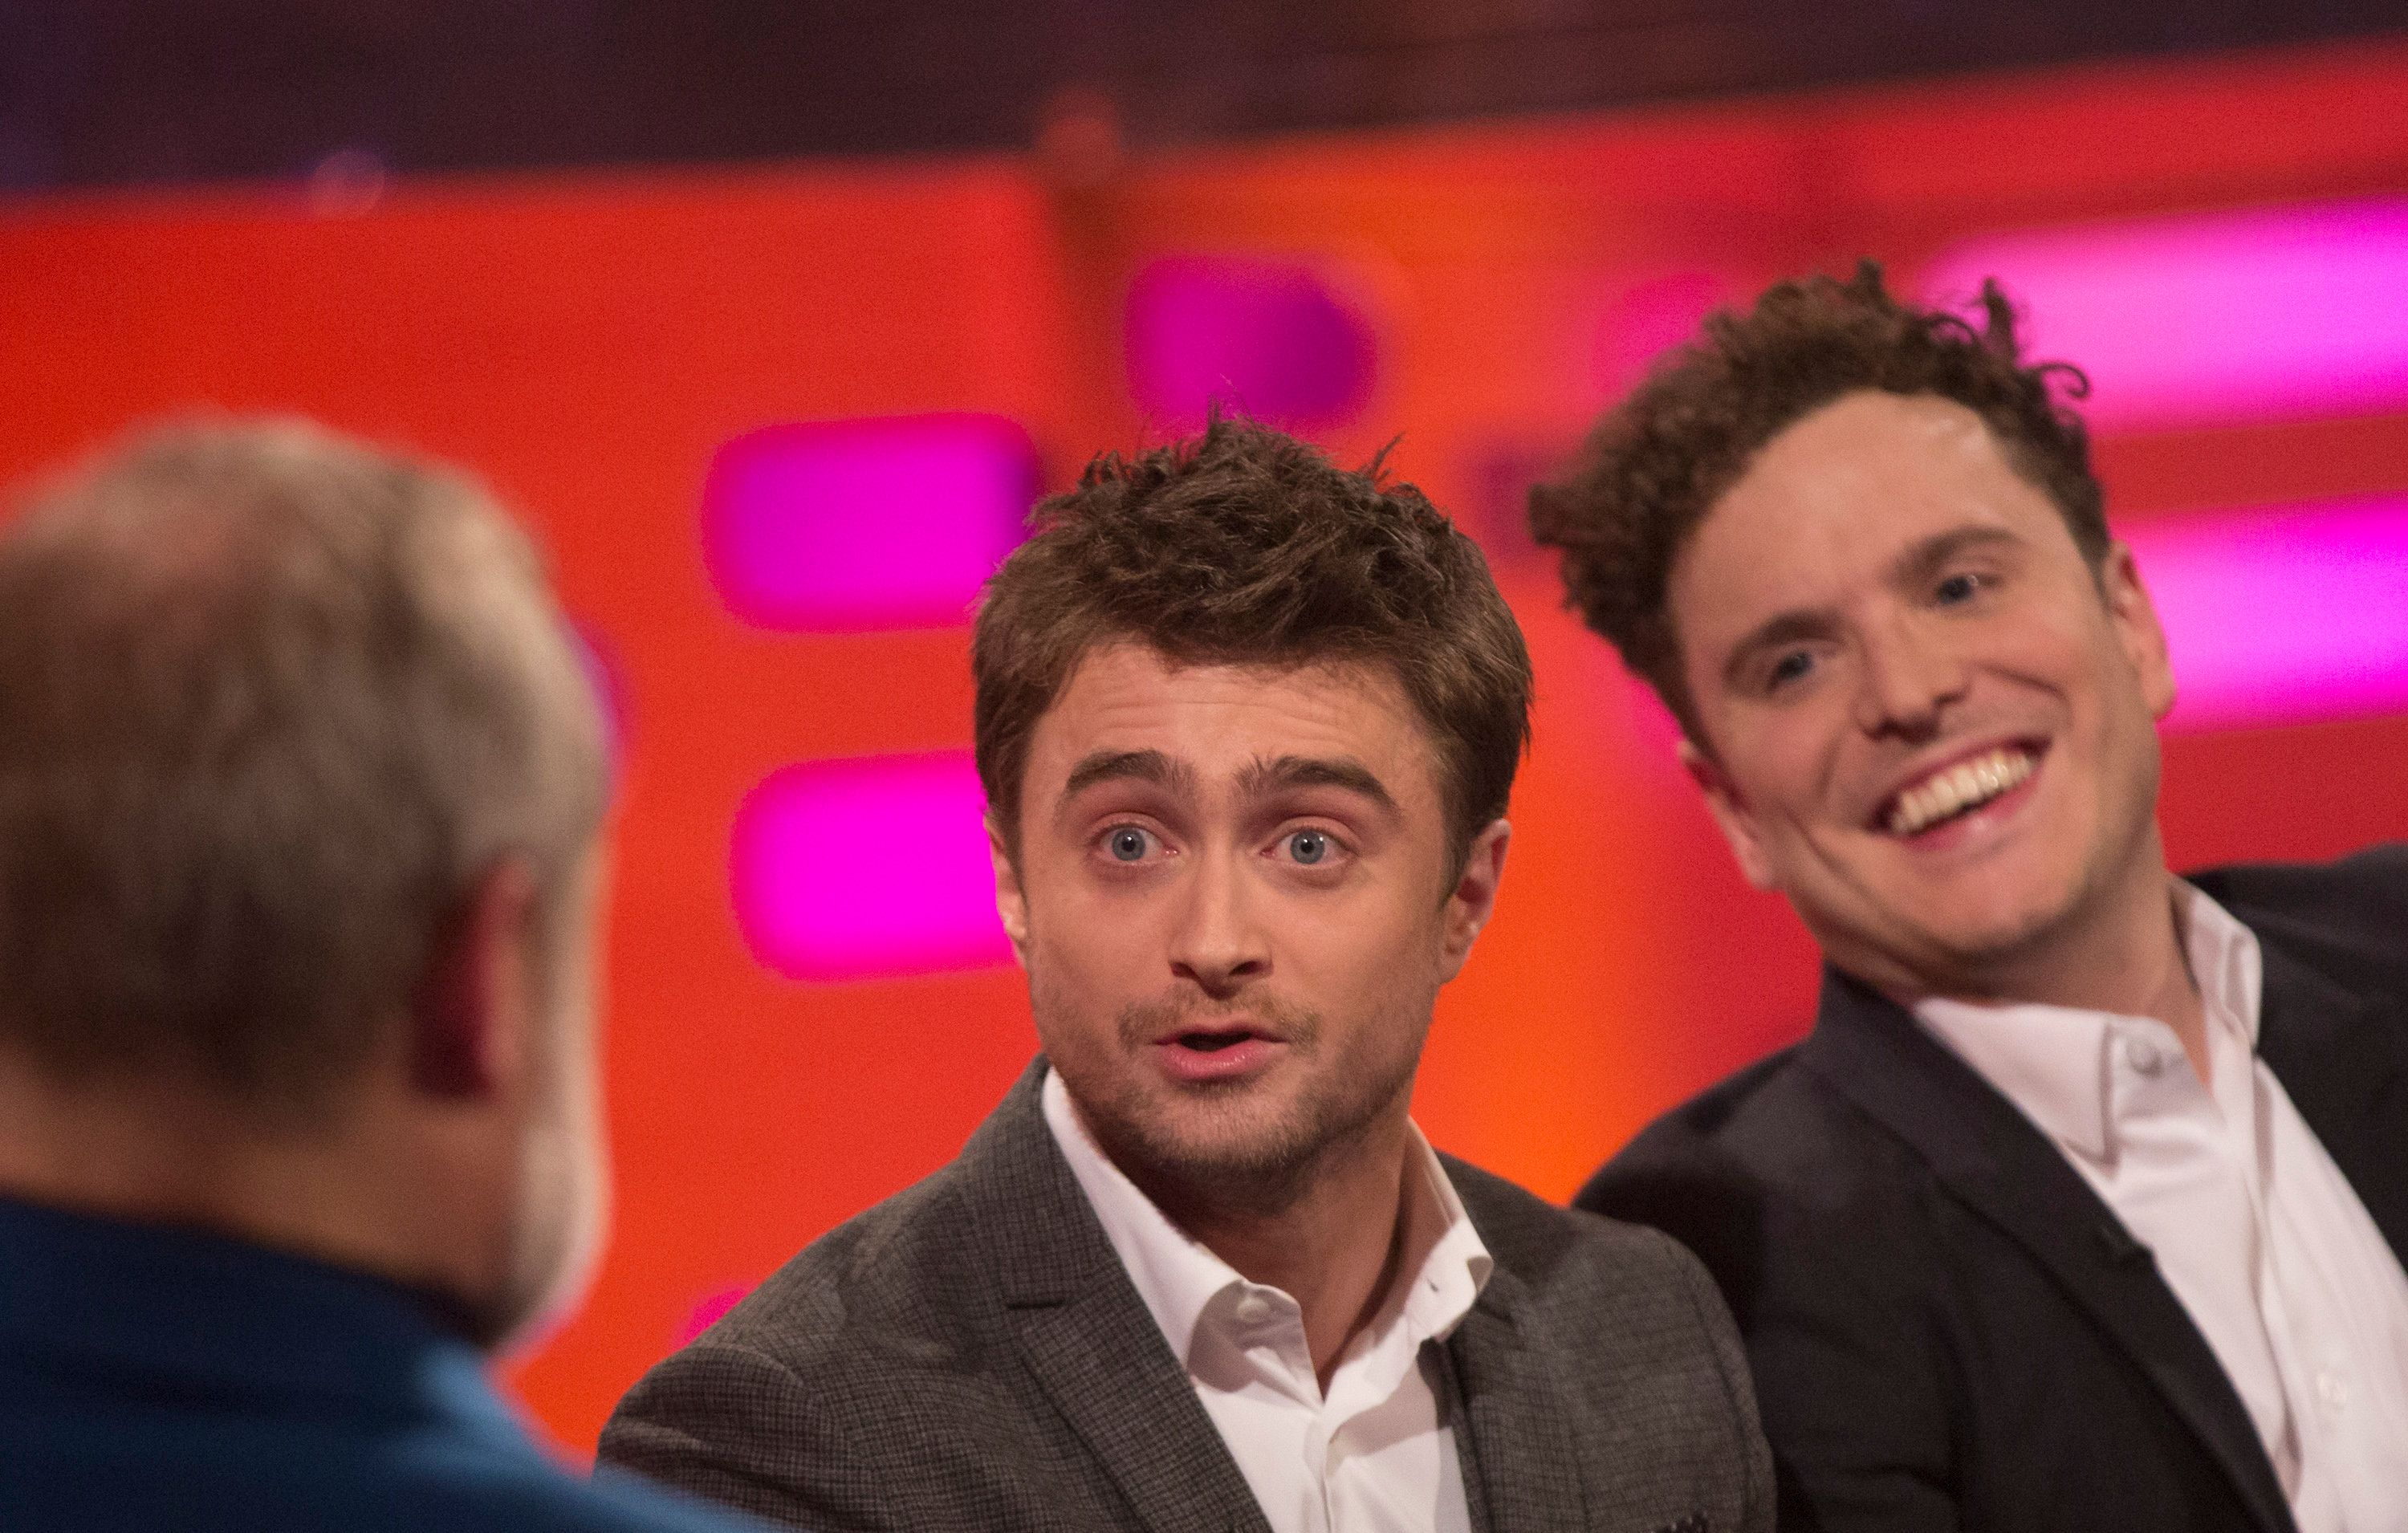 (left to right) Host Graham Norton, Daniel Radcliffe and Joshua McGuire during filming of the Graham Norton Show at The London Studios, to be aired on BBC One on Friday February 17, 2017. (Photo by Isabel Infantes/PA Images via Getty Images)